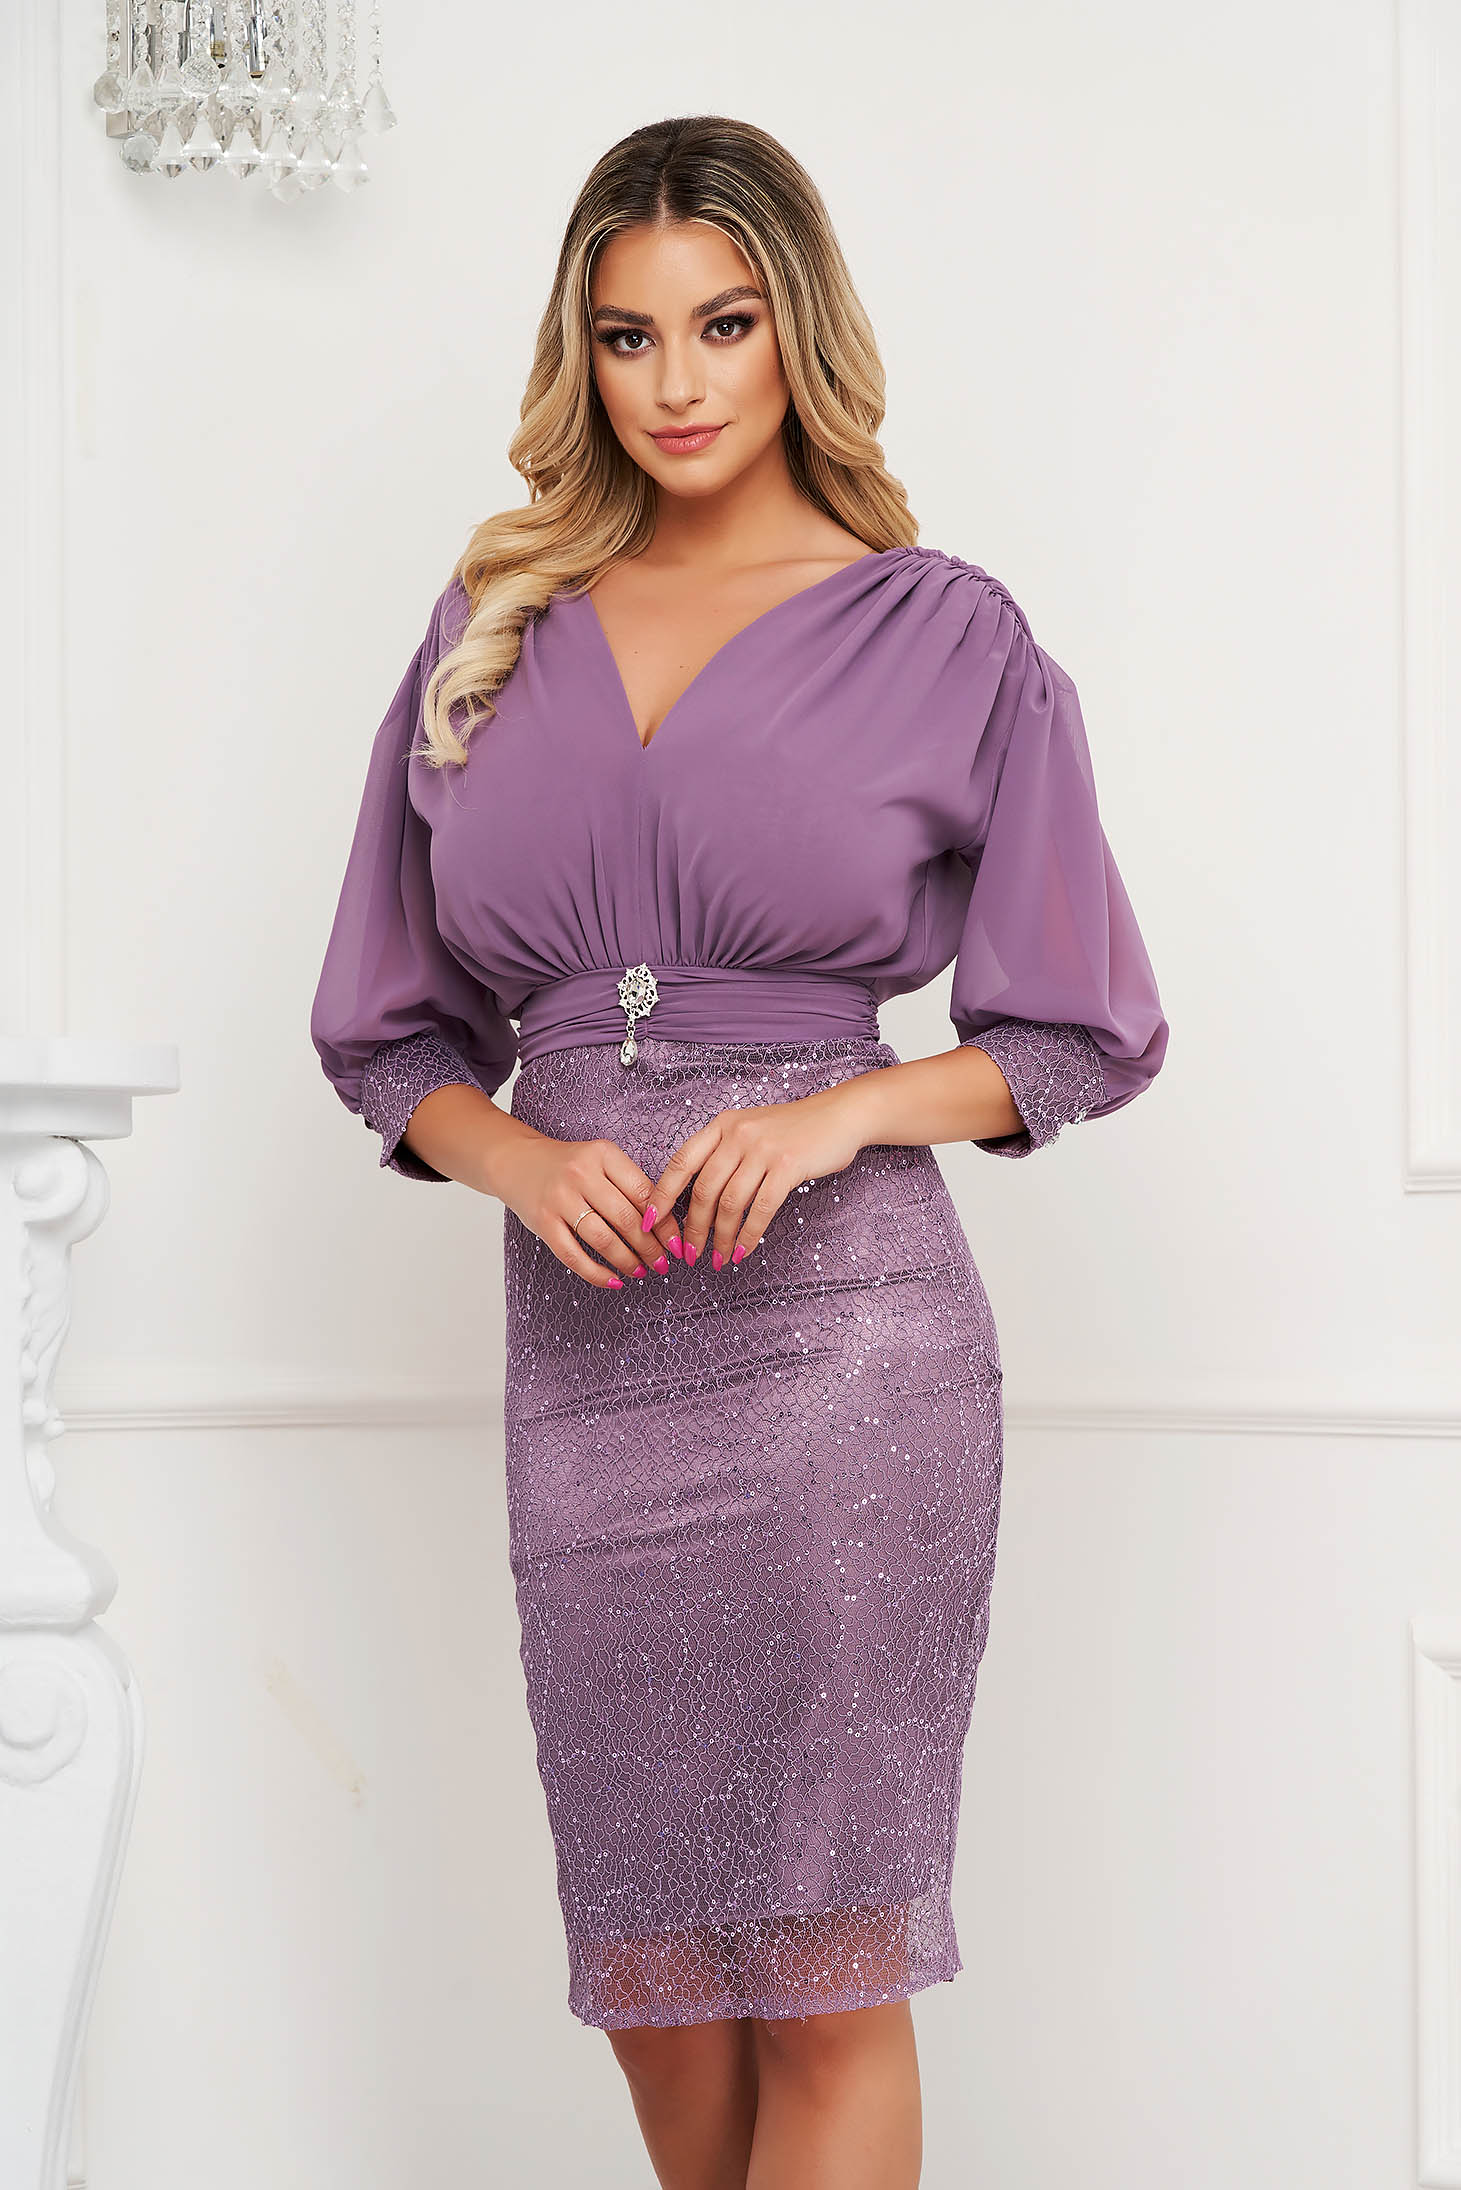 Purple pencil dress satin texture skirt with vail overlap accessorized with breastpin